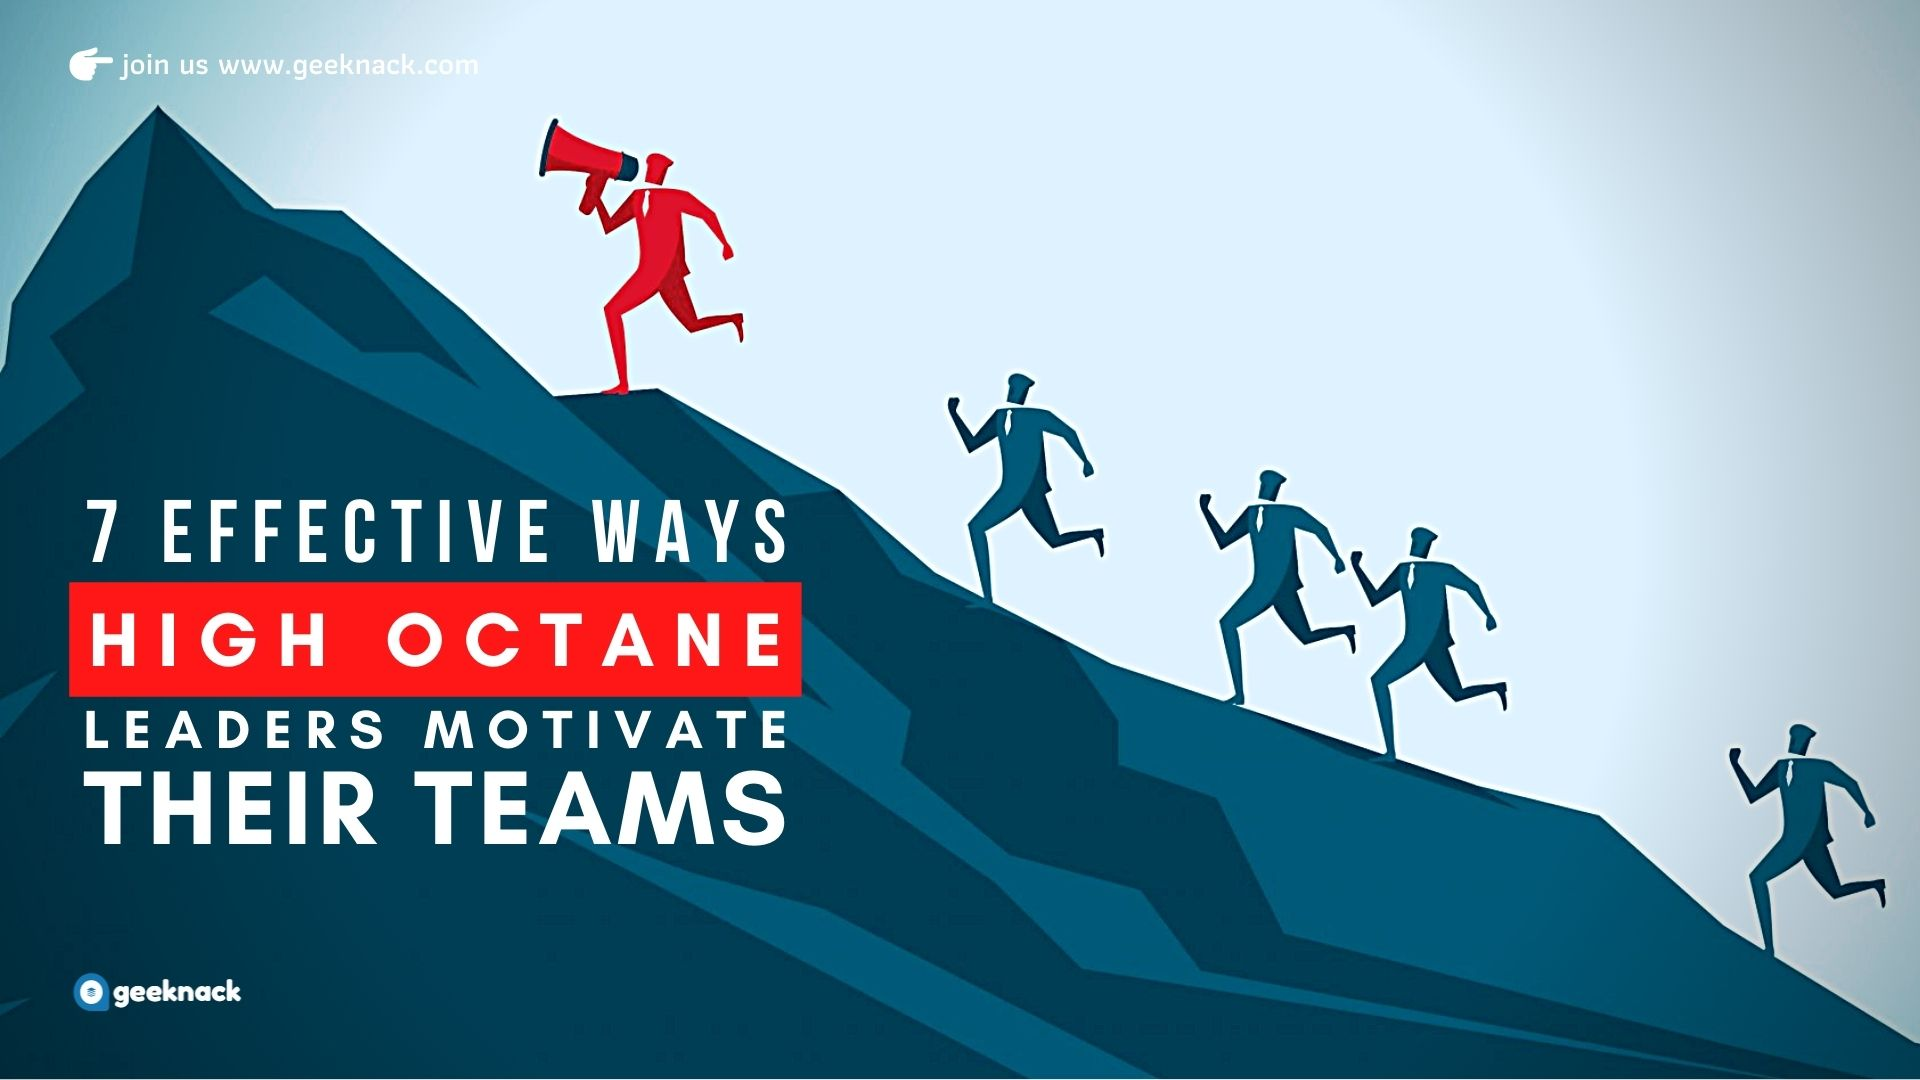 7 Effective Ways High Octane Leaders Motivate Their Teams cover